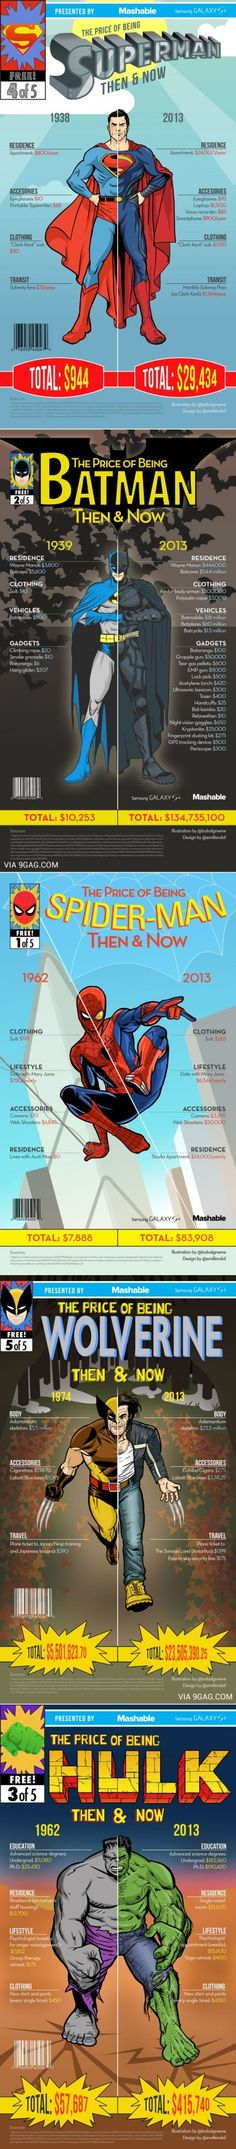 Superheroes, then and now..